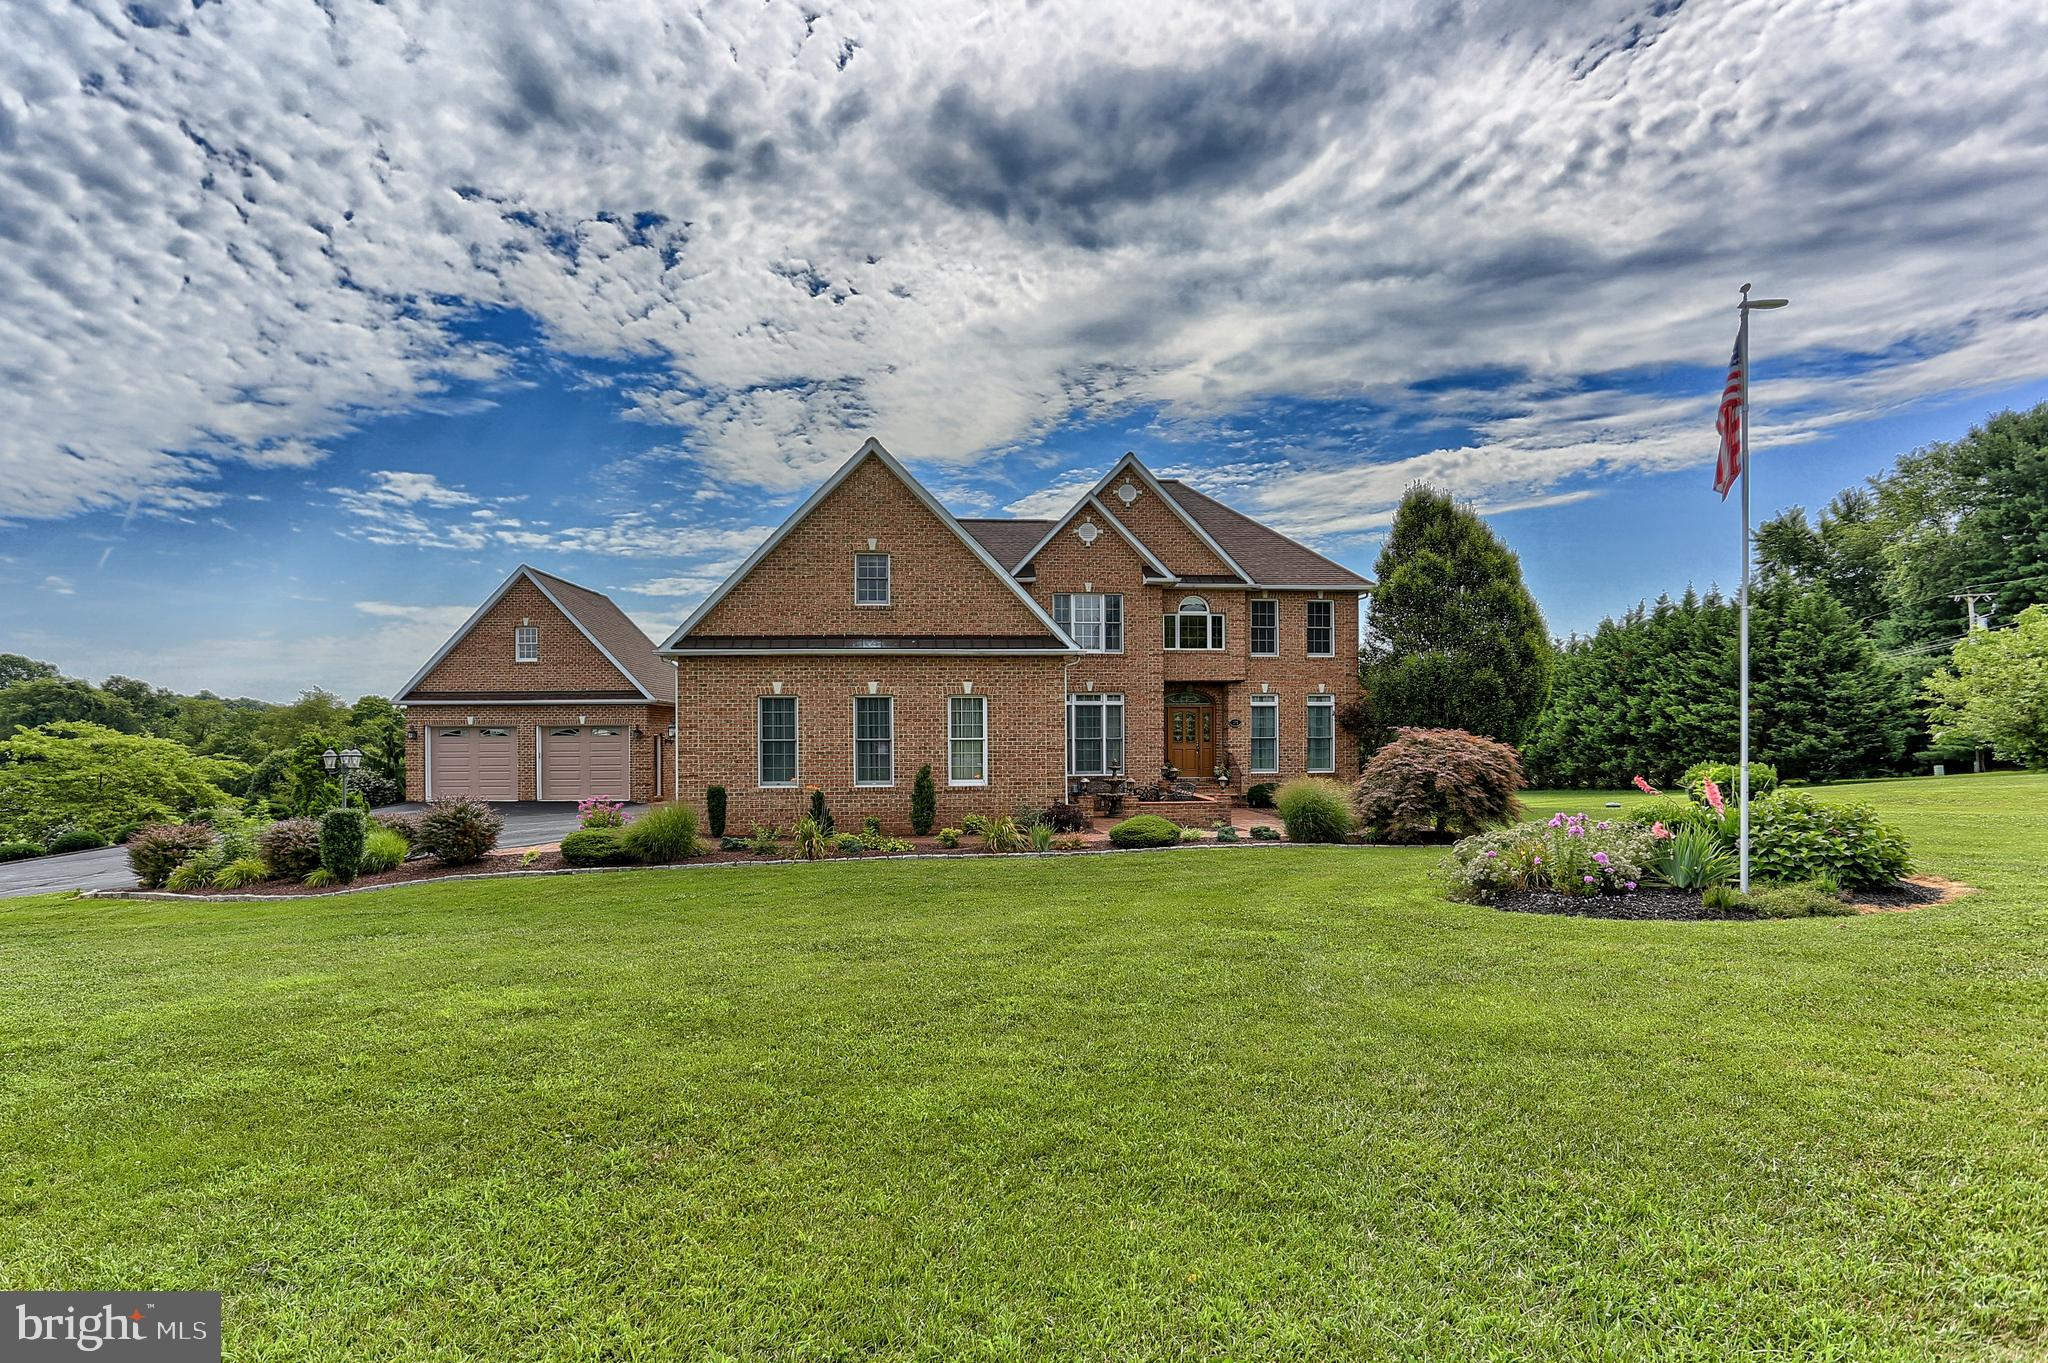 575 HOUCK ROAD, WESTMINSTER, MD 21157